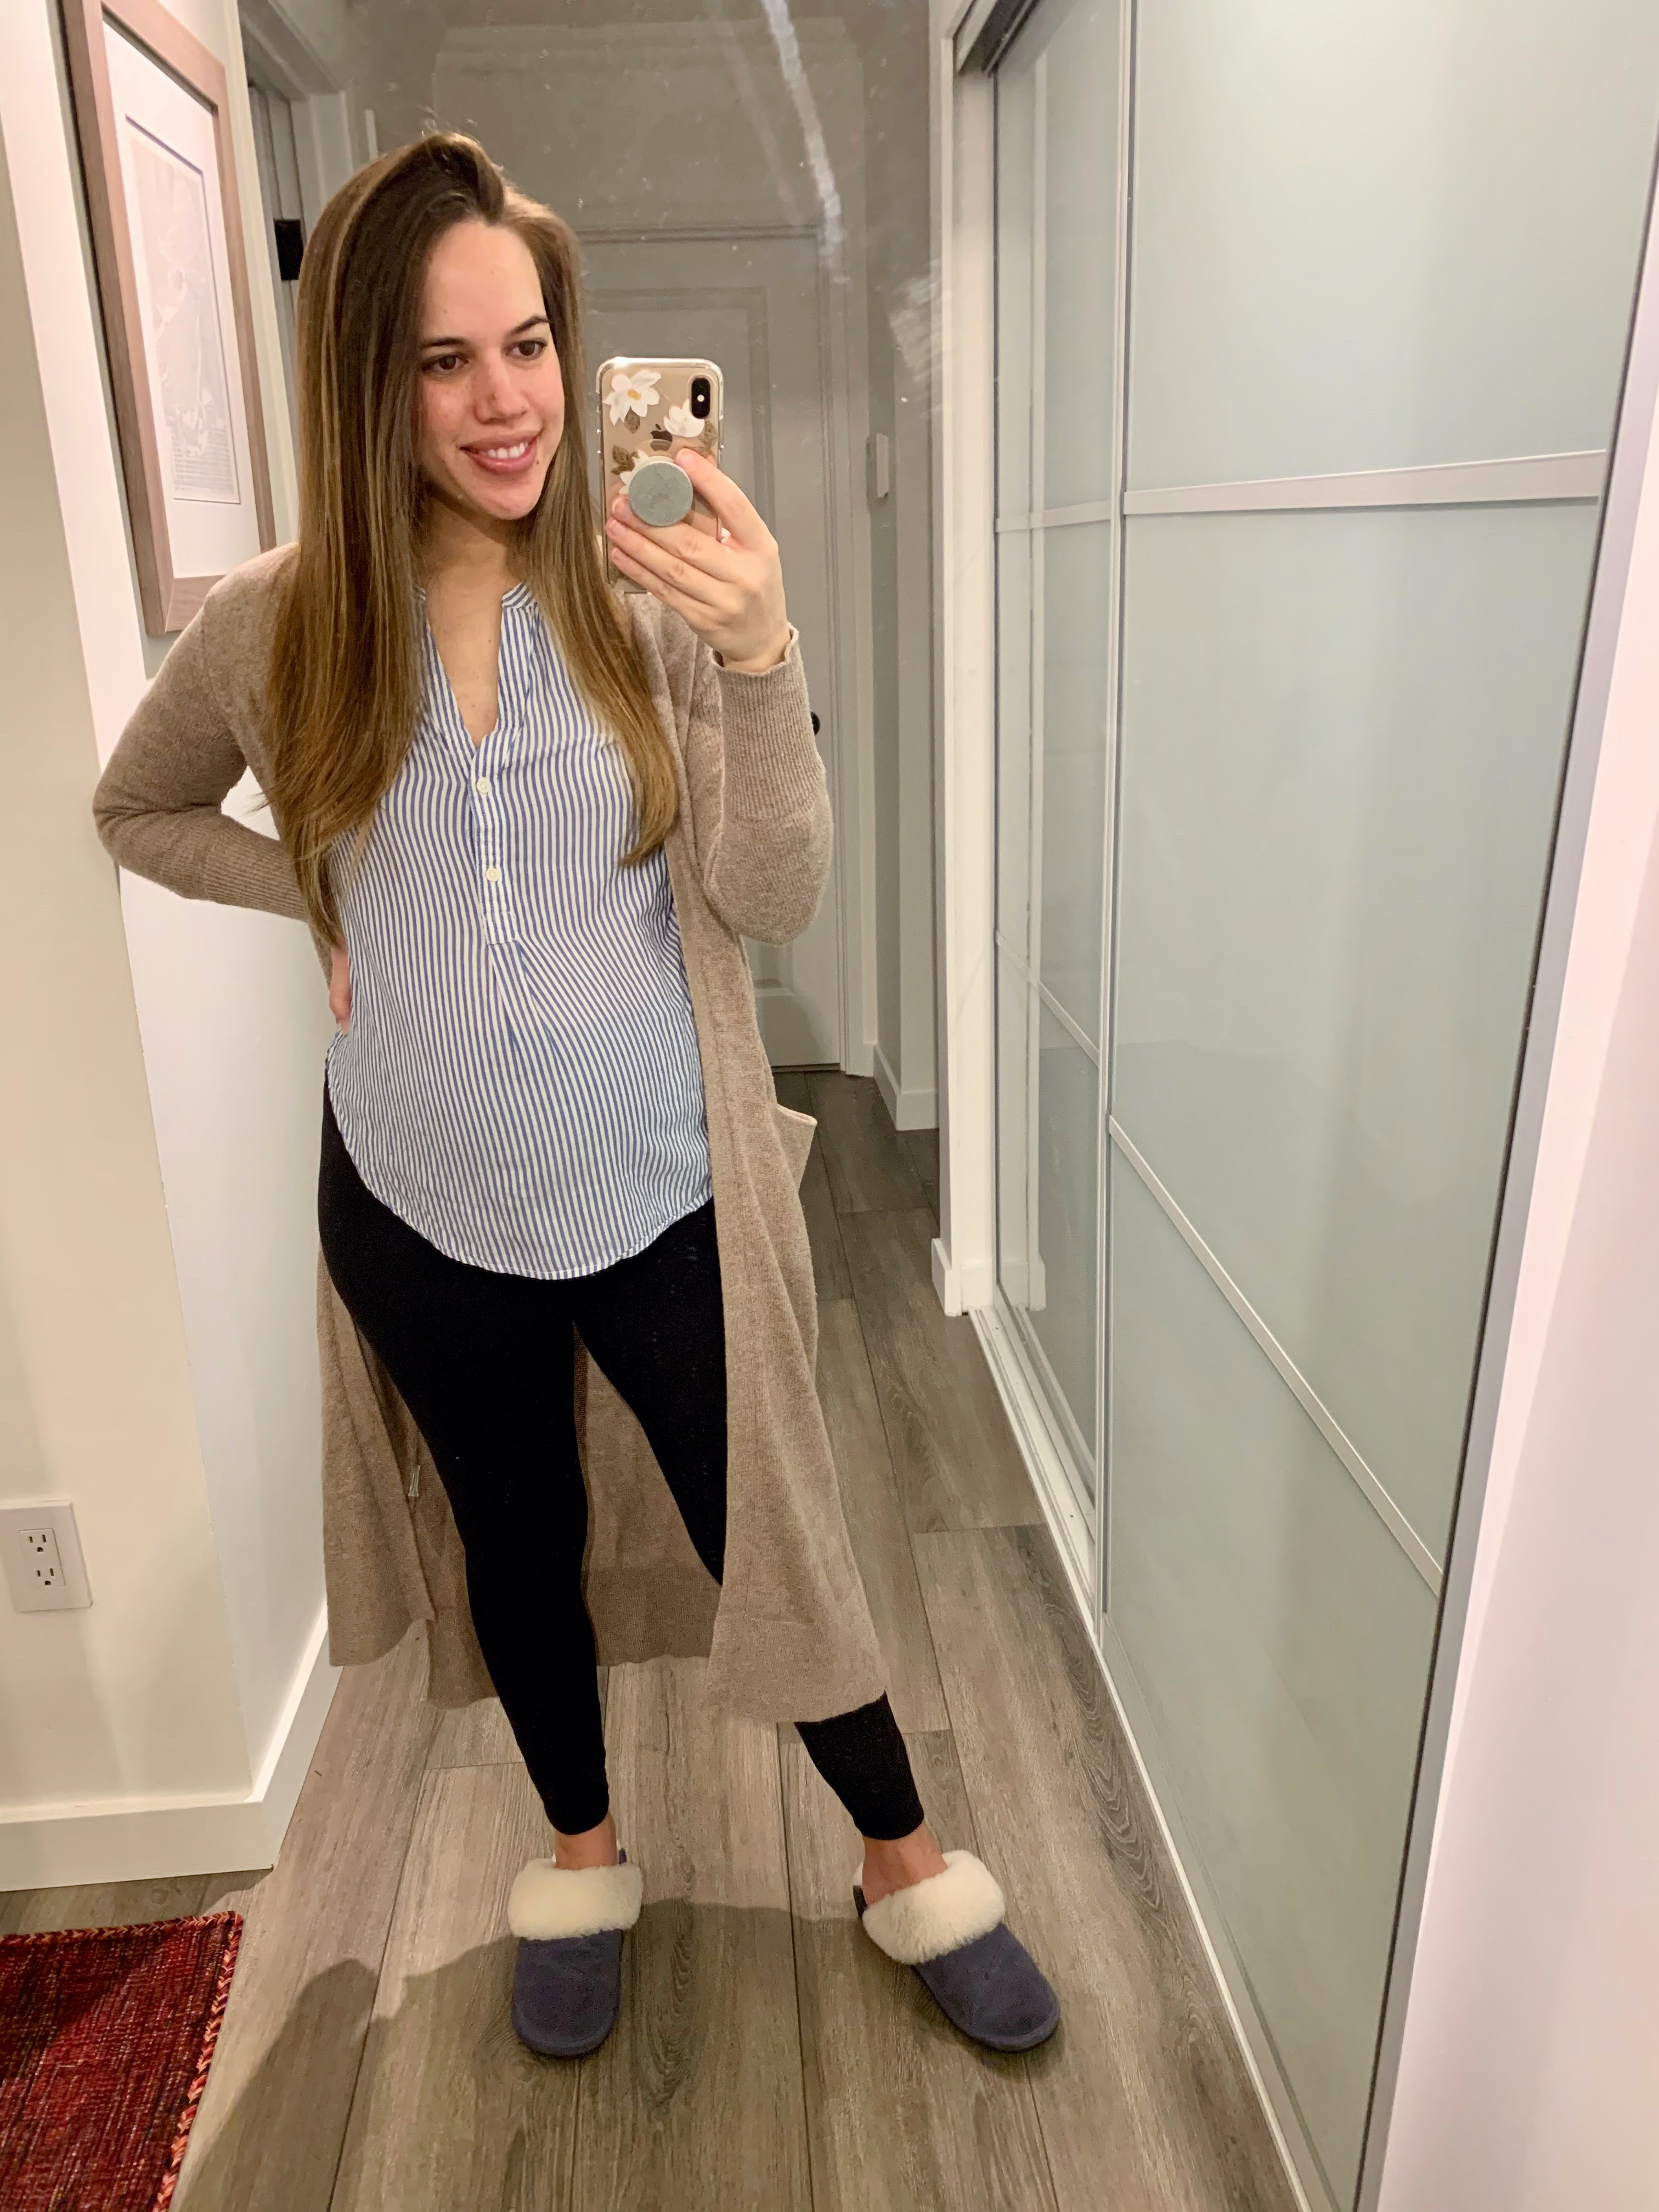 Jules in Flats - Striped Popover Tunic with Leggings & Duster Cardigan to WFH (Business Casual Workwear on a Budget)